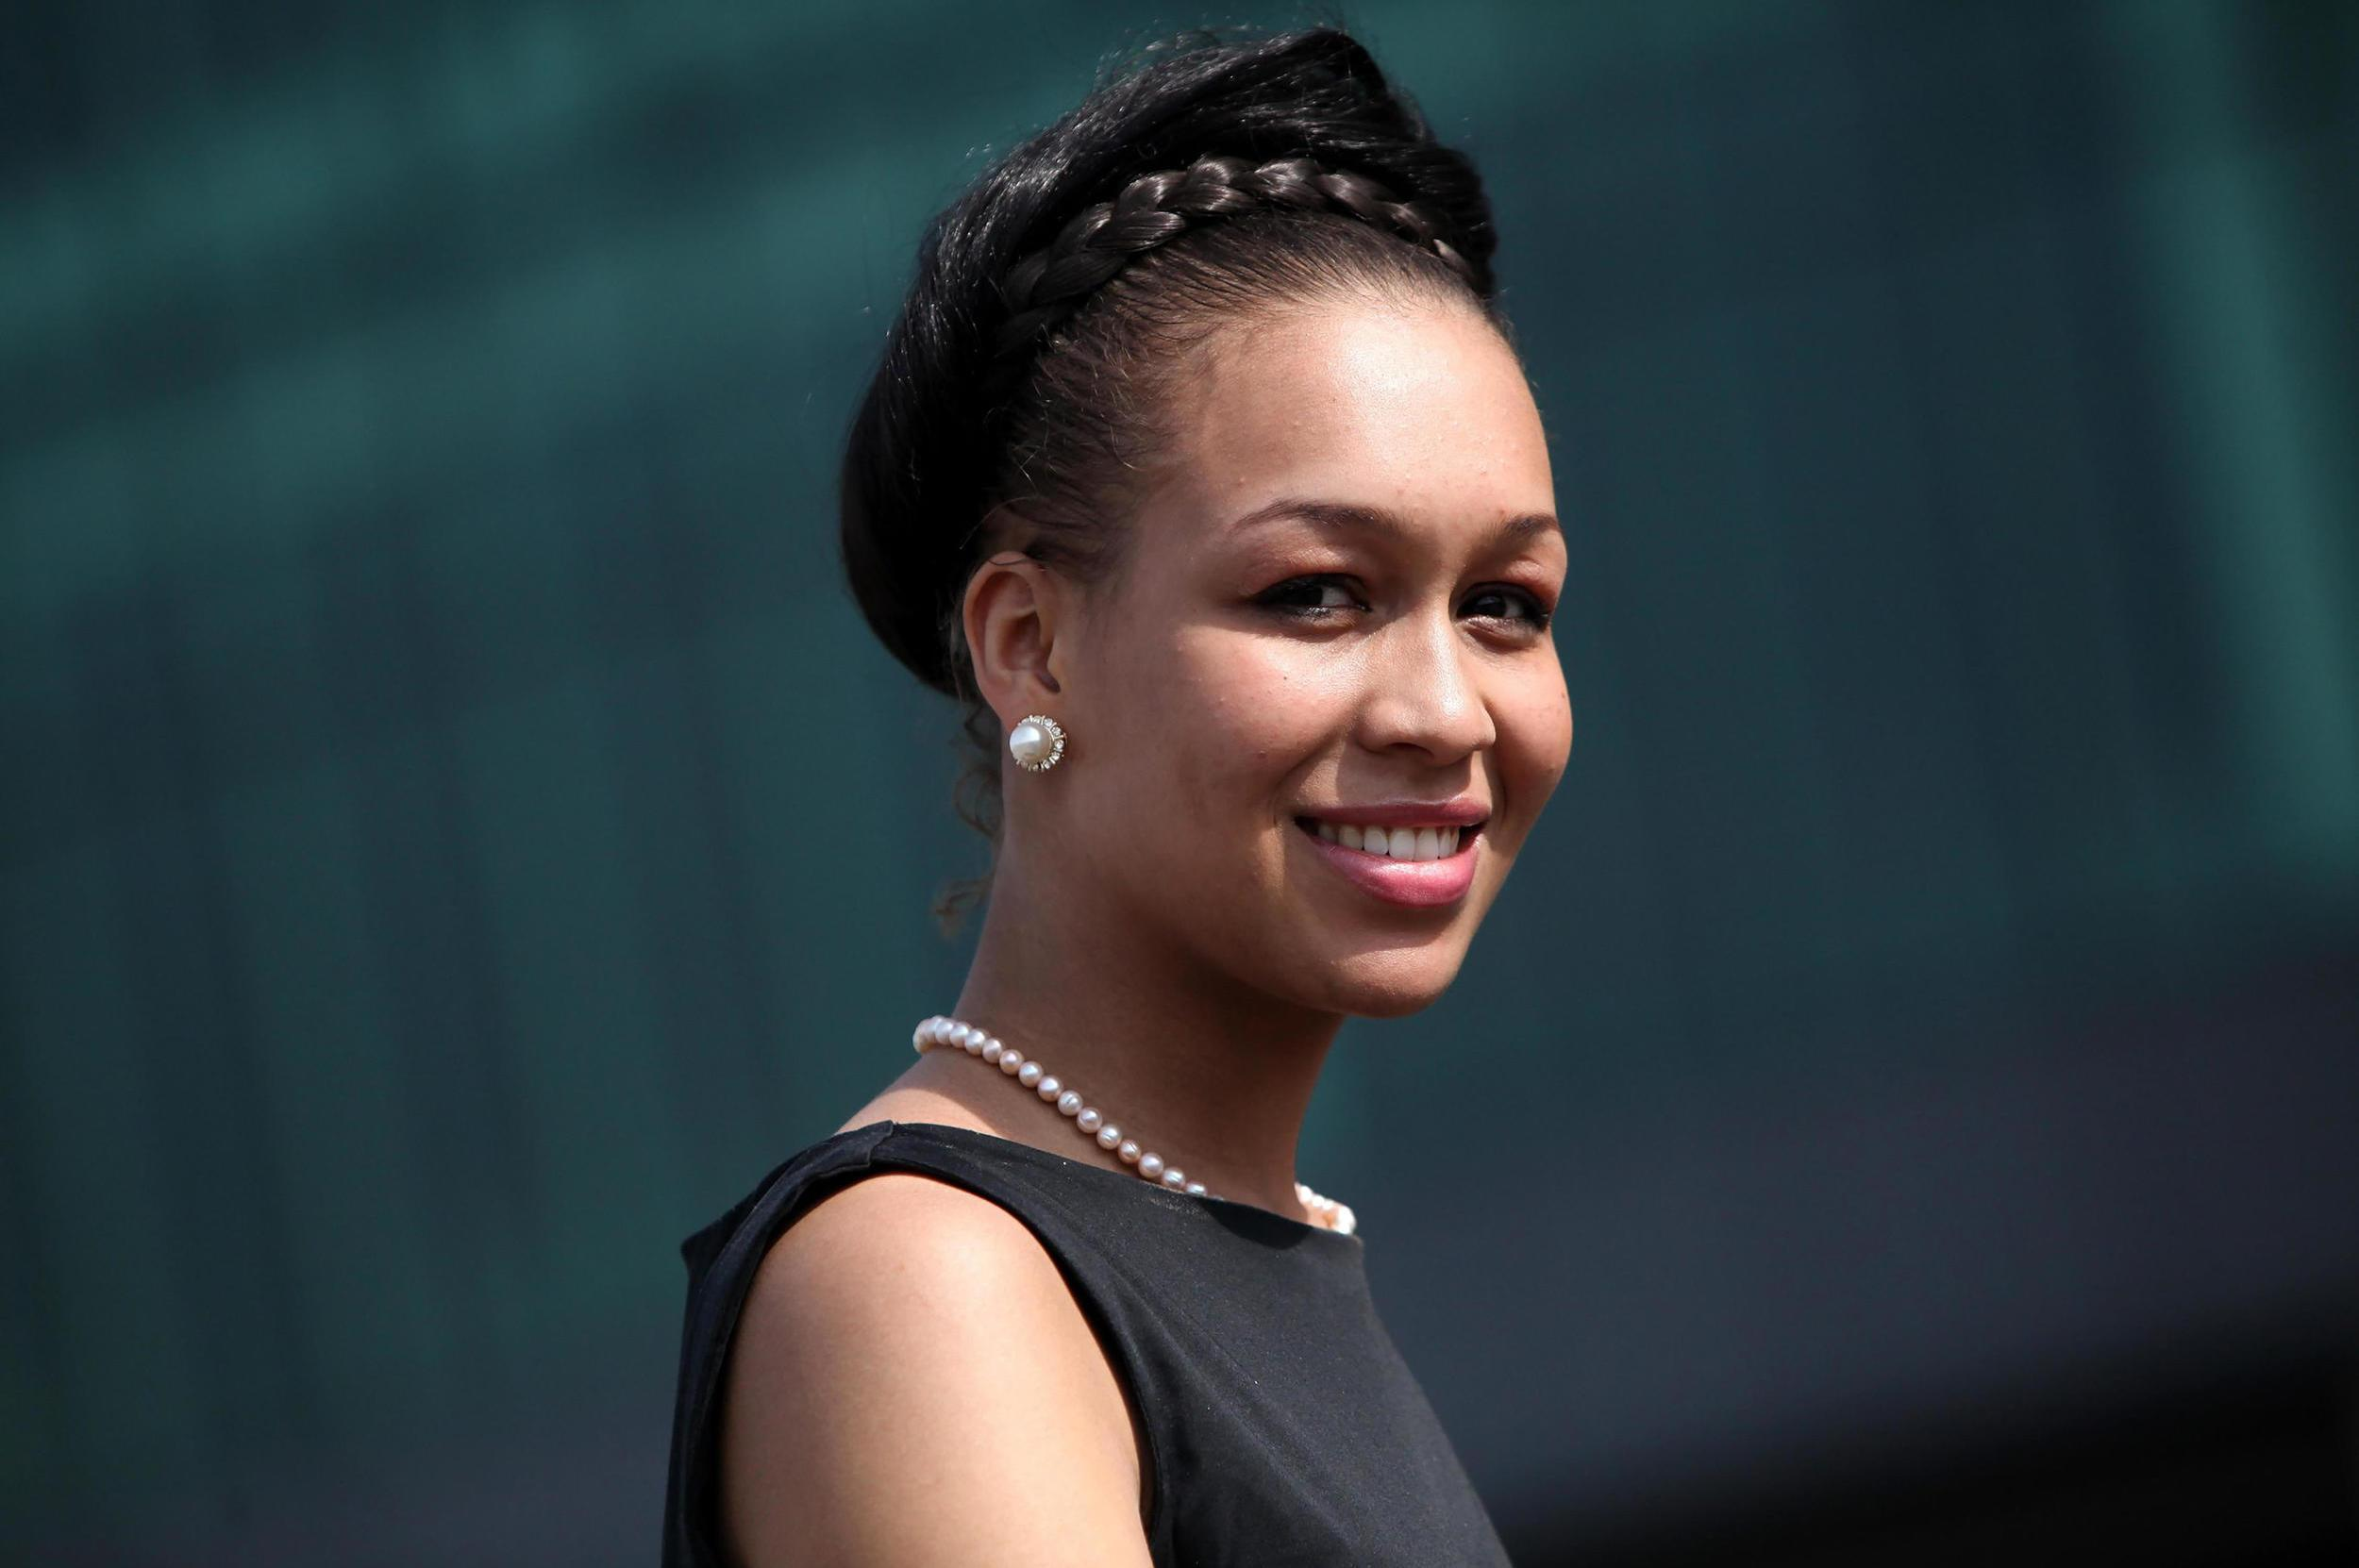 """Rebecca Ferguson shot to fame as a runner up on the X-Factor in 2010 but fell victim to a scam artist last year when someone she had believed to be a friend conned her out of £43,000. Rachel Taylor befriended the singer in 2012 and claimed to be a qualified accountant, so Ferguson allowed her to look after her finances. Instead of doing this Taylor stole £43,000 from the Liverpudlian singer. Read more <a href=""""http://money.aol.co.uk/2015/07/20/x-factor-star-rebecca-ferguson-ripped-off-by-woman-she-thought-w/"""">here</a>."""